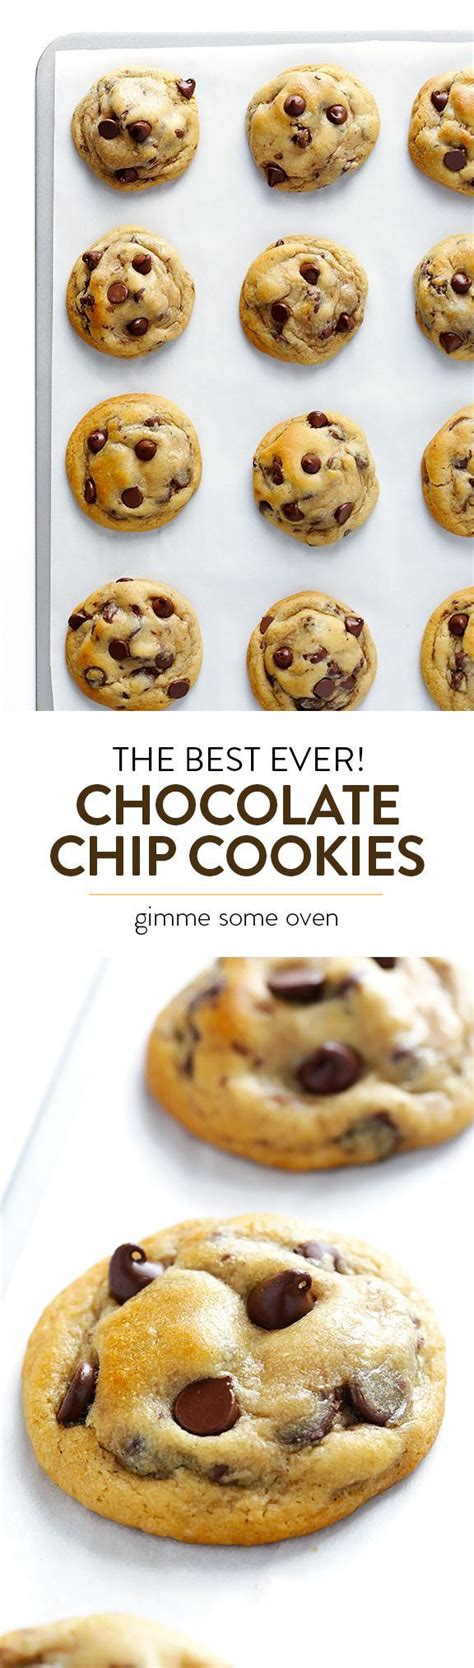 The Best Chocolate Chip Cookies  Receta  (cookies And